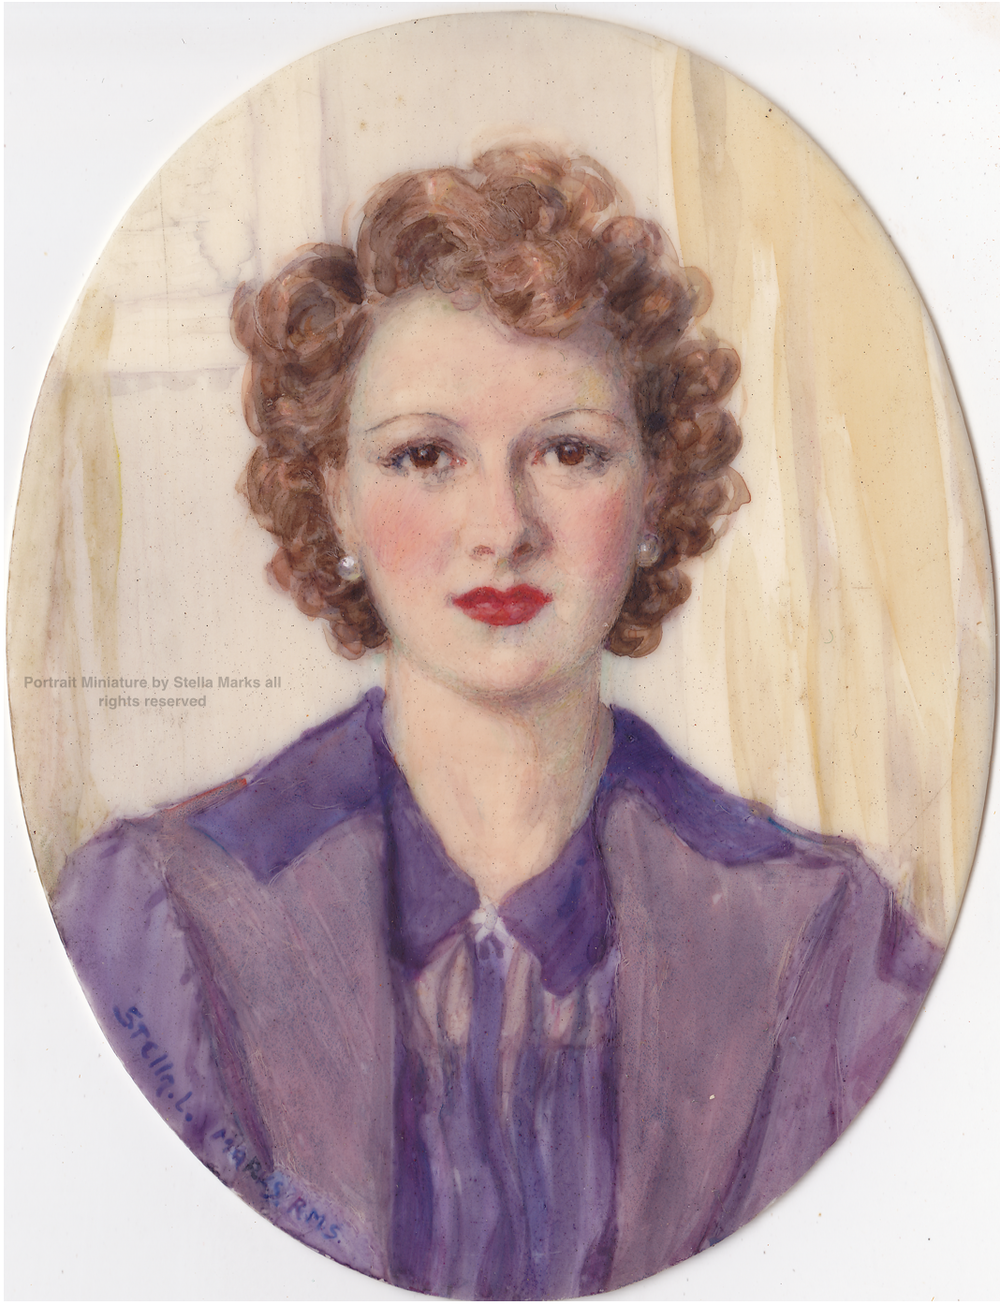 Portrait Miniature by Stella Marks. Copyright Stella Marks' Estate all rights reserved. Private Collection.